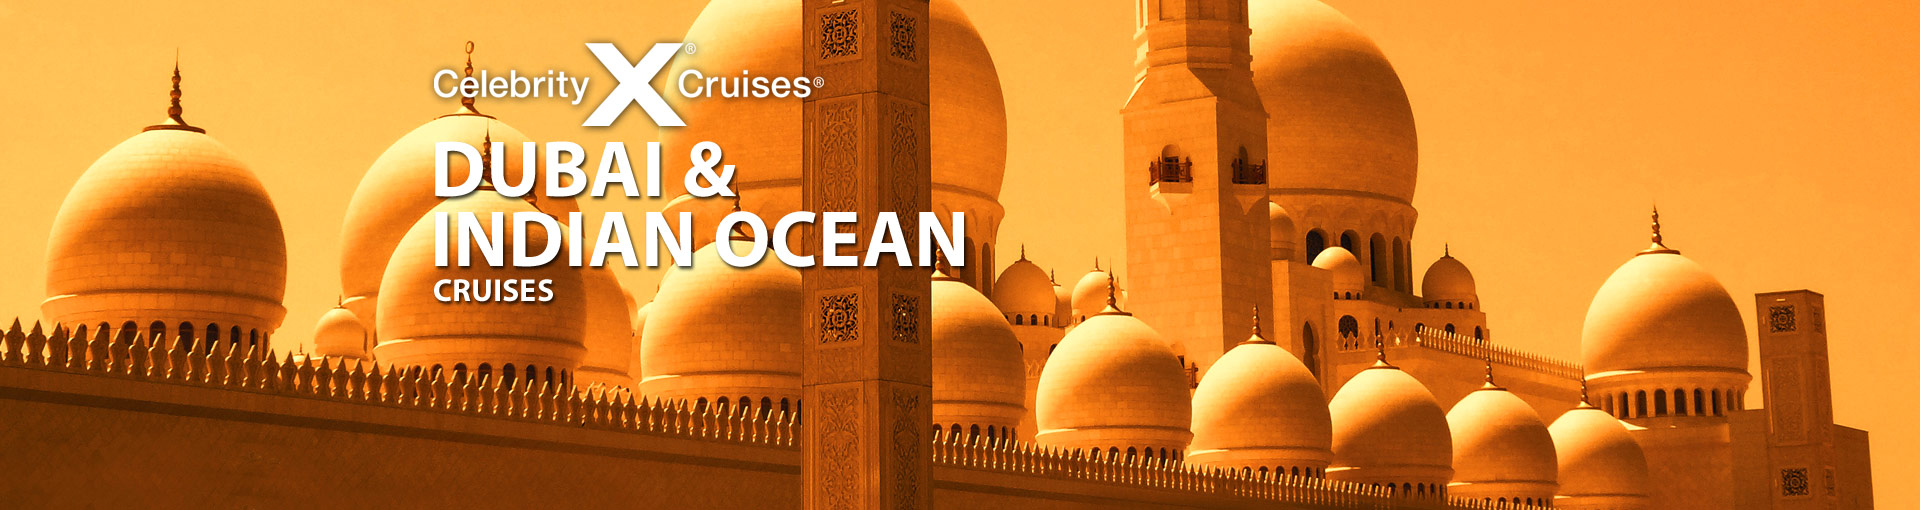 Celebrity Cruises to Dubai and India